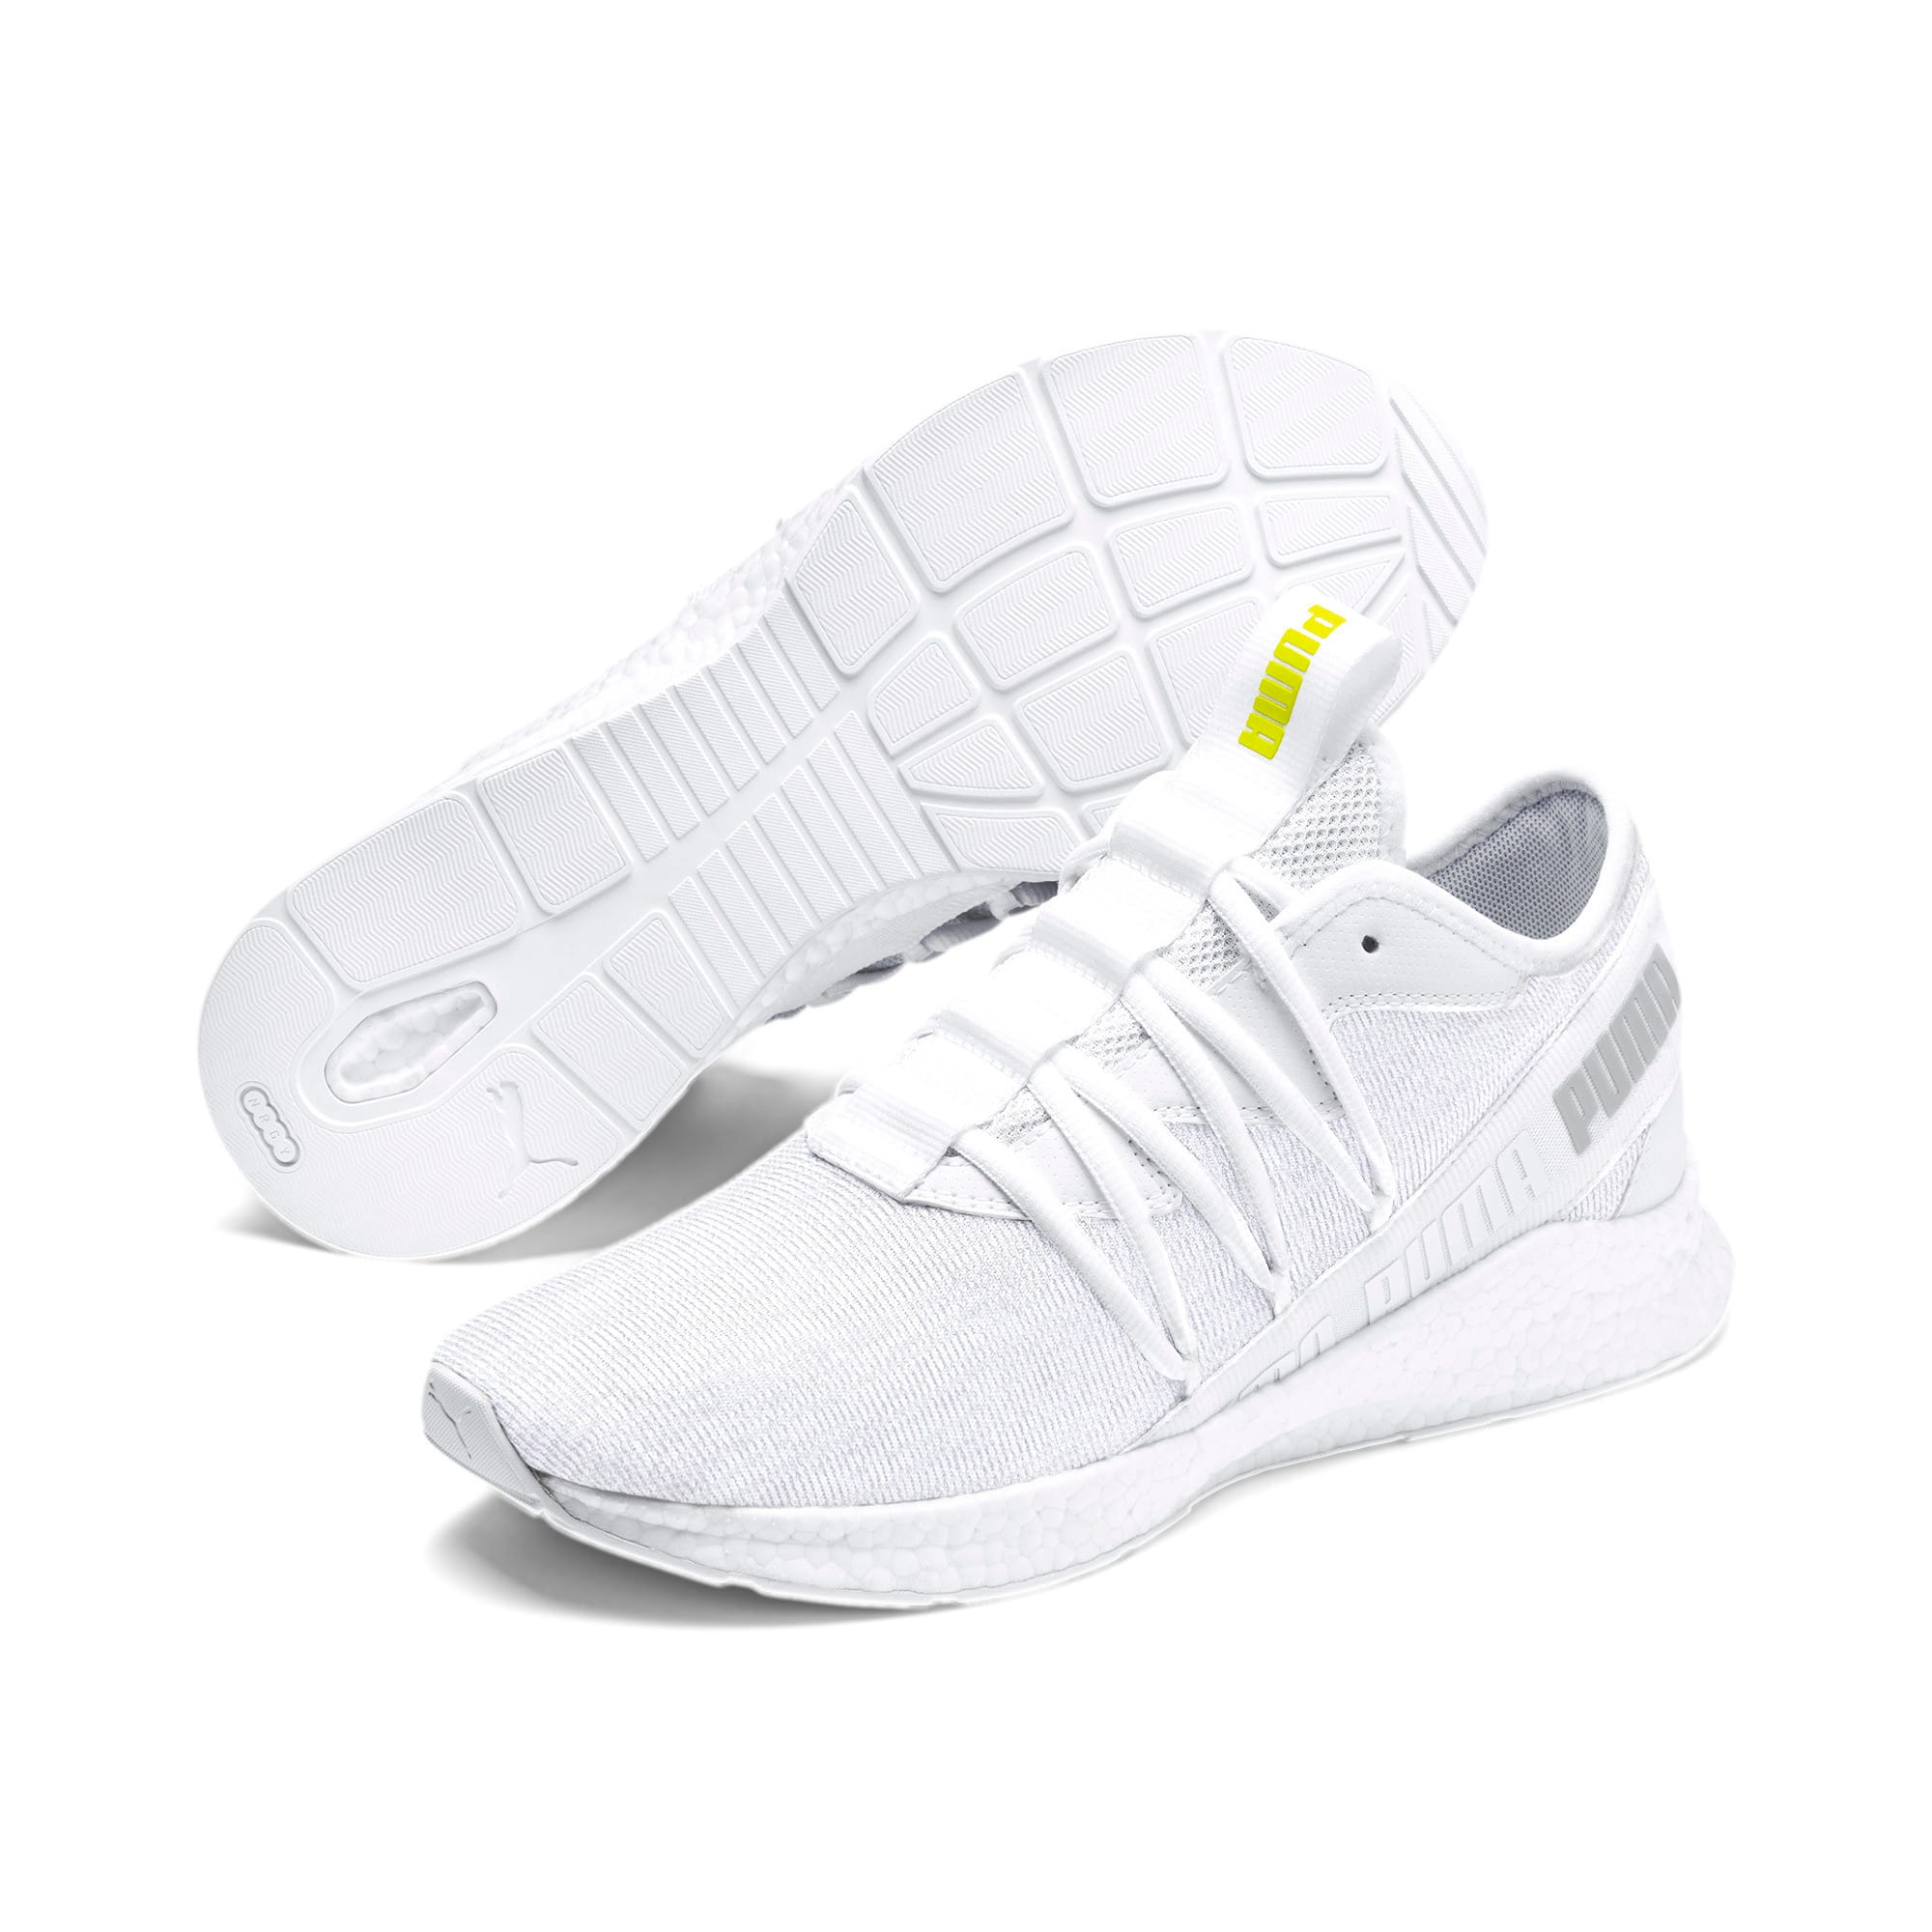 NRGY Star Knit sportschoenen, White-Glacier Gray-Yellow, large